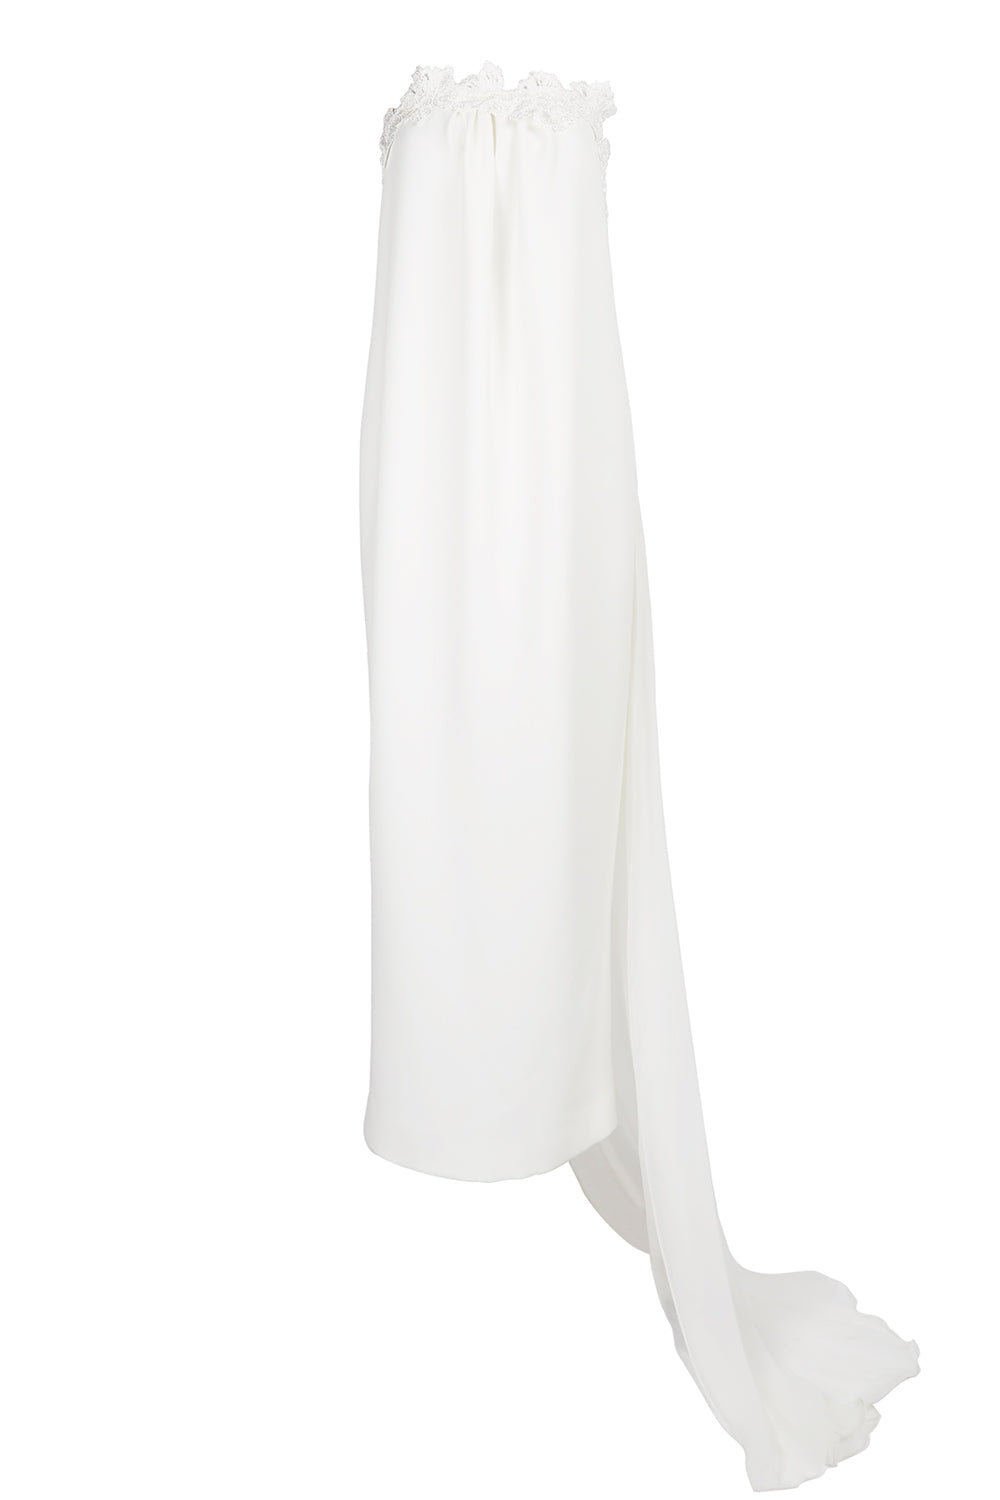 Grace's Garden Crepe Gown With Detachable Chiffon Train